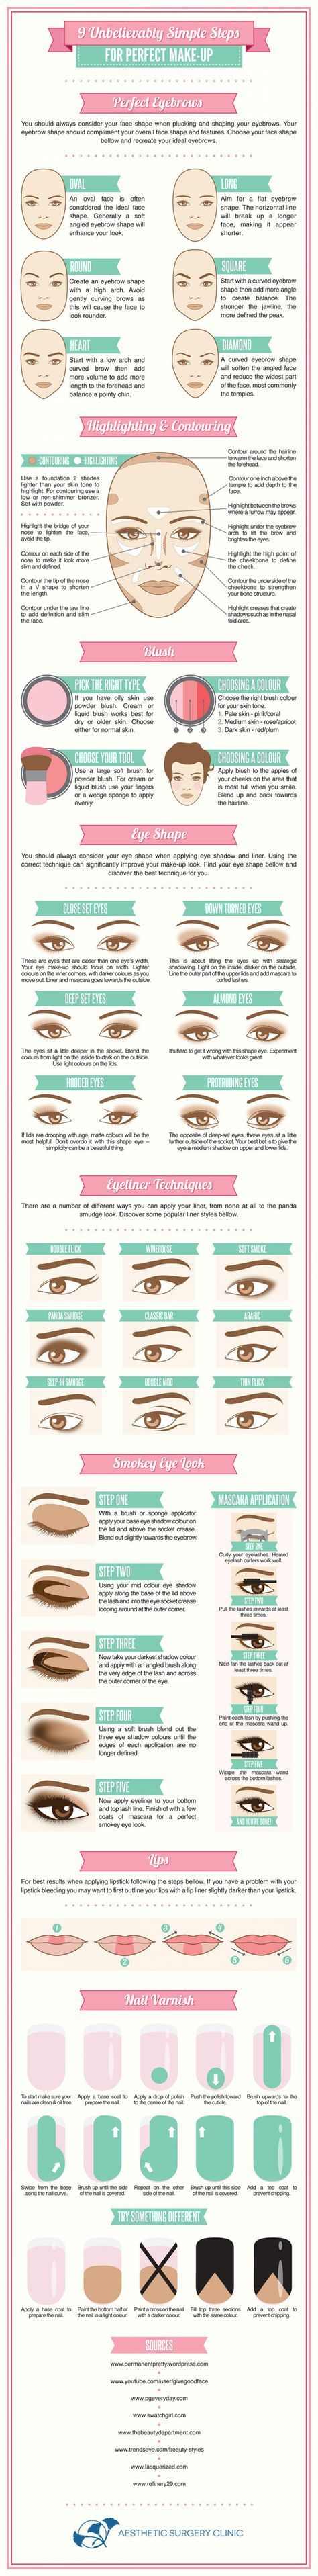 Eye Liner Guide: 9 Simple Steps to Perfect Makeup via Visual.ly Best Blushes for Your Skin Type via Makeup Blushing Basics via The Glitter Guide Best Brows for Your Face Shape via Your Beauty Blog